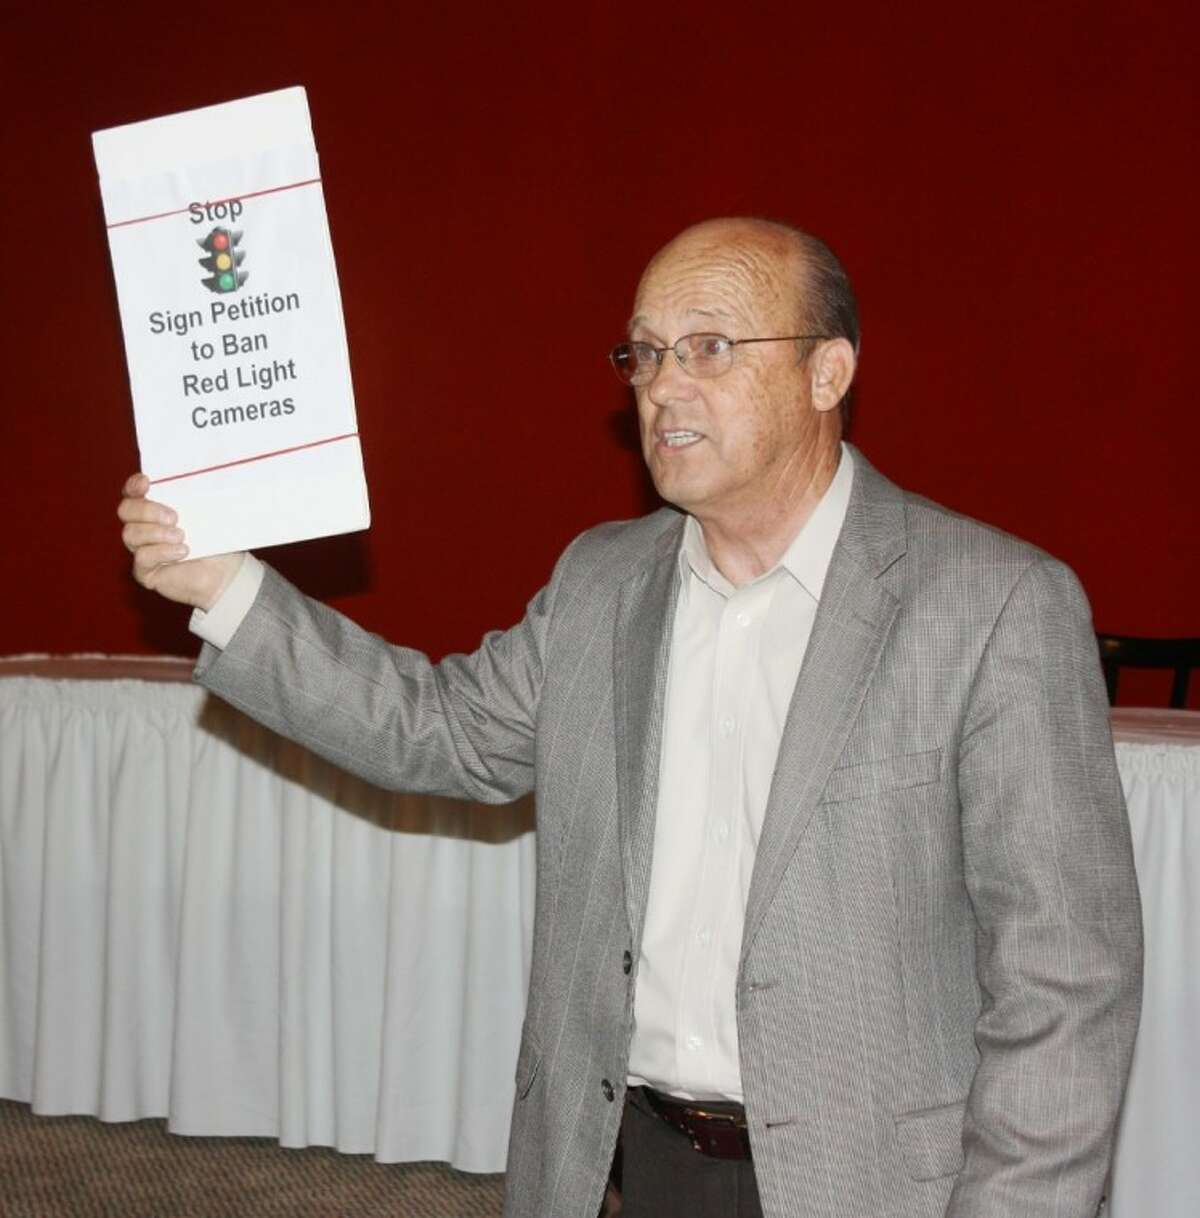 Aubrey Vaughan, co-founder of the Tri-County Texas Tea Party, encouraged Cleveland residents and Tea Party members to sign a petition that would remove the city's red light camera system.